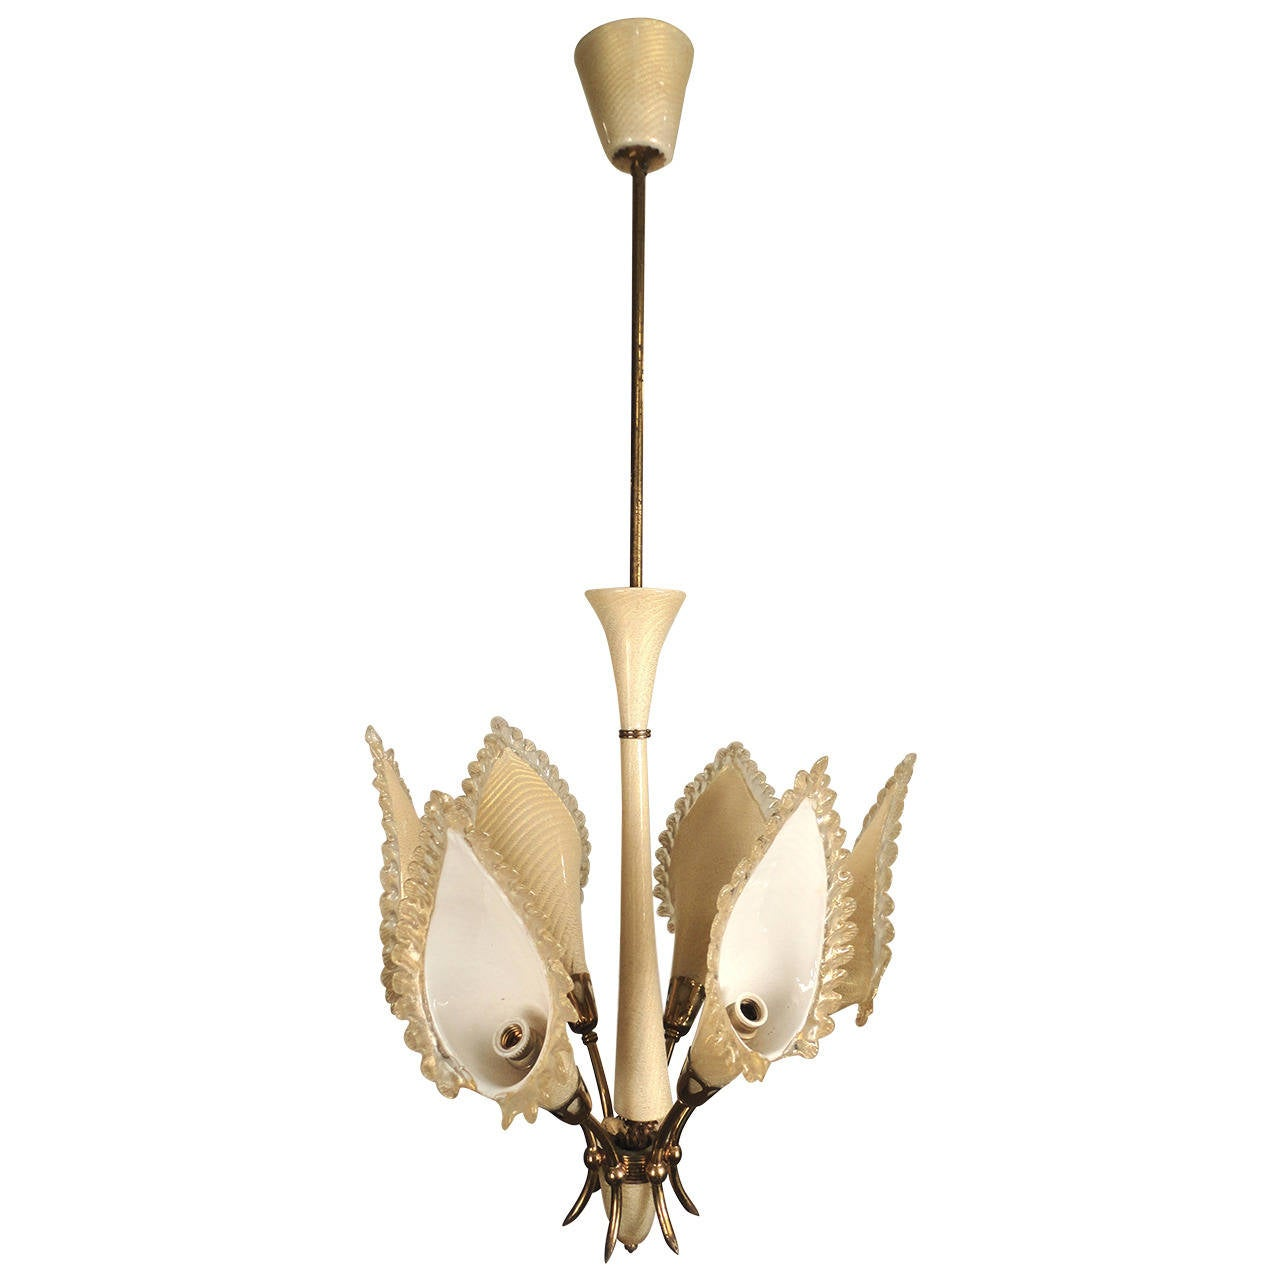 mid century modern murano glass chandelier for sale at 1stdibs. Black Bedroom Furniture Sets. Home Design Ideas